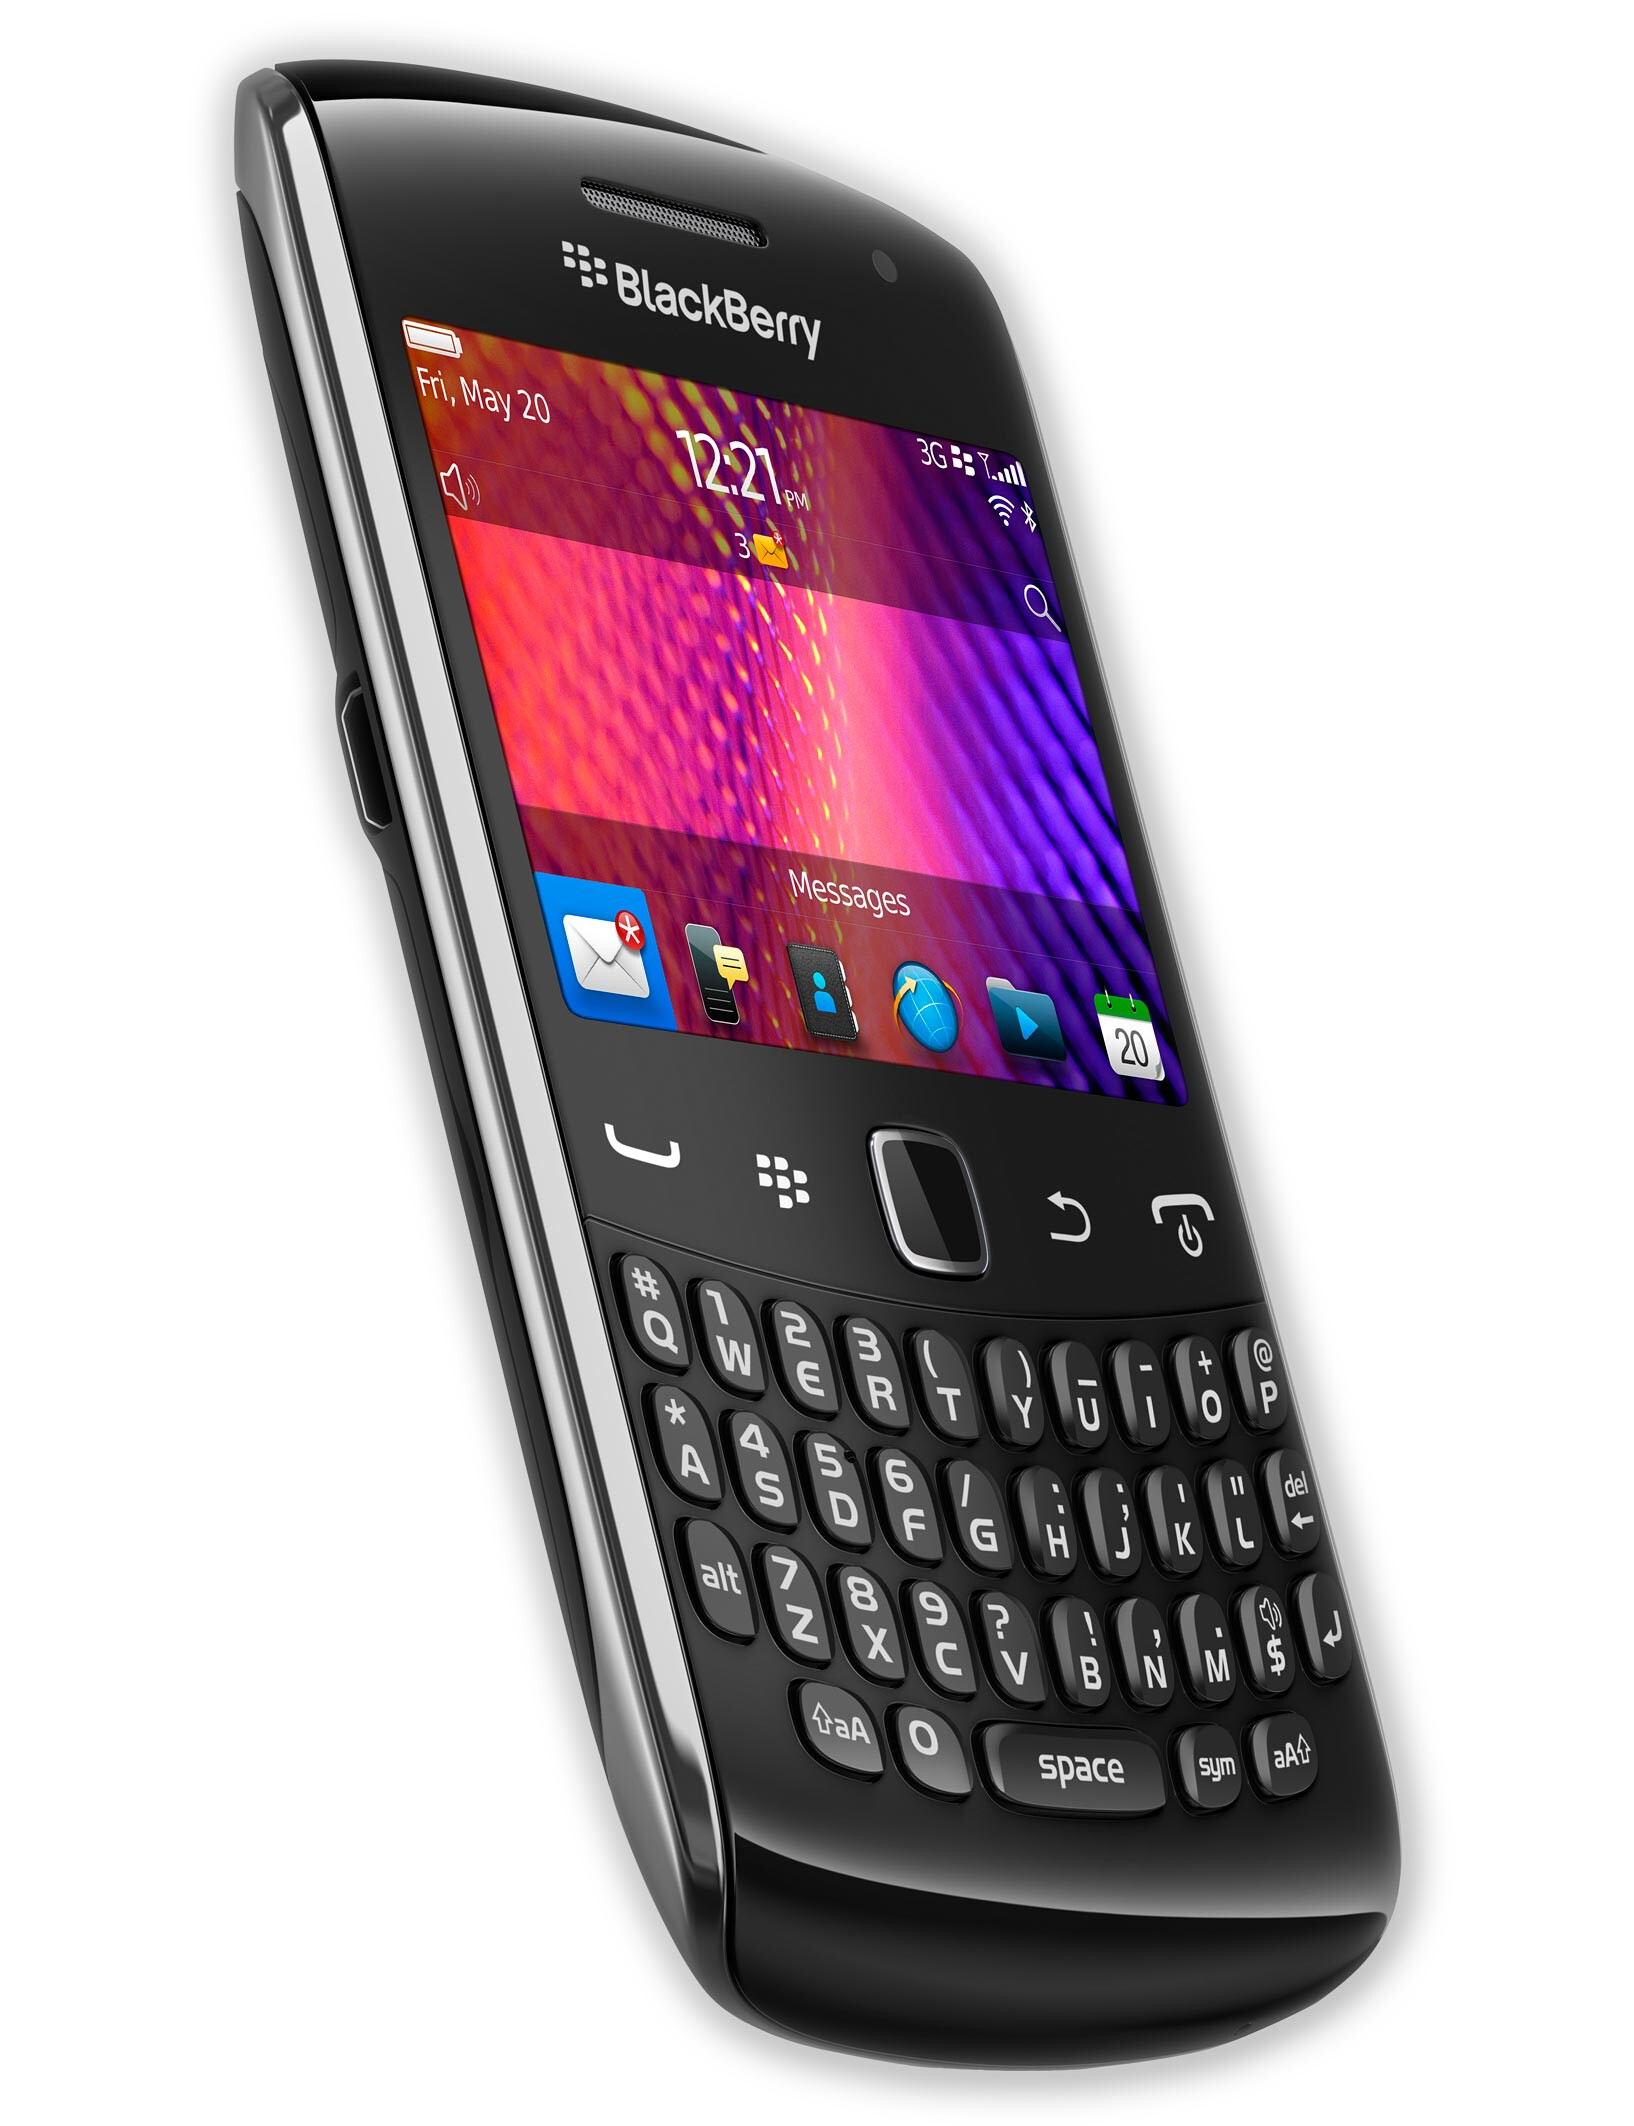 BlackBerry Curve 9360 specs